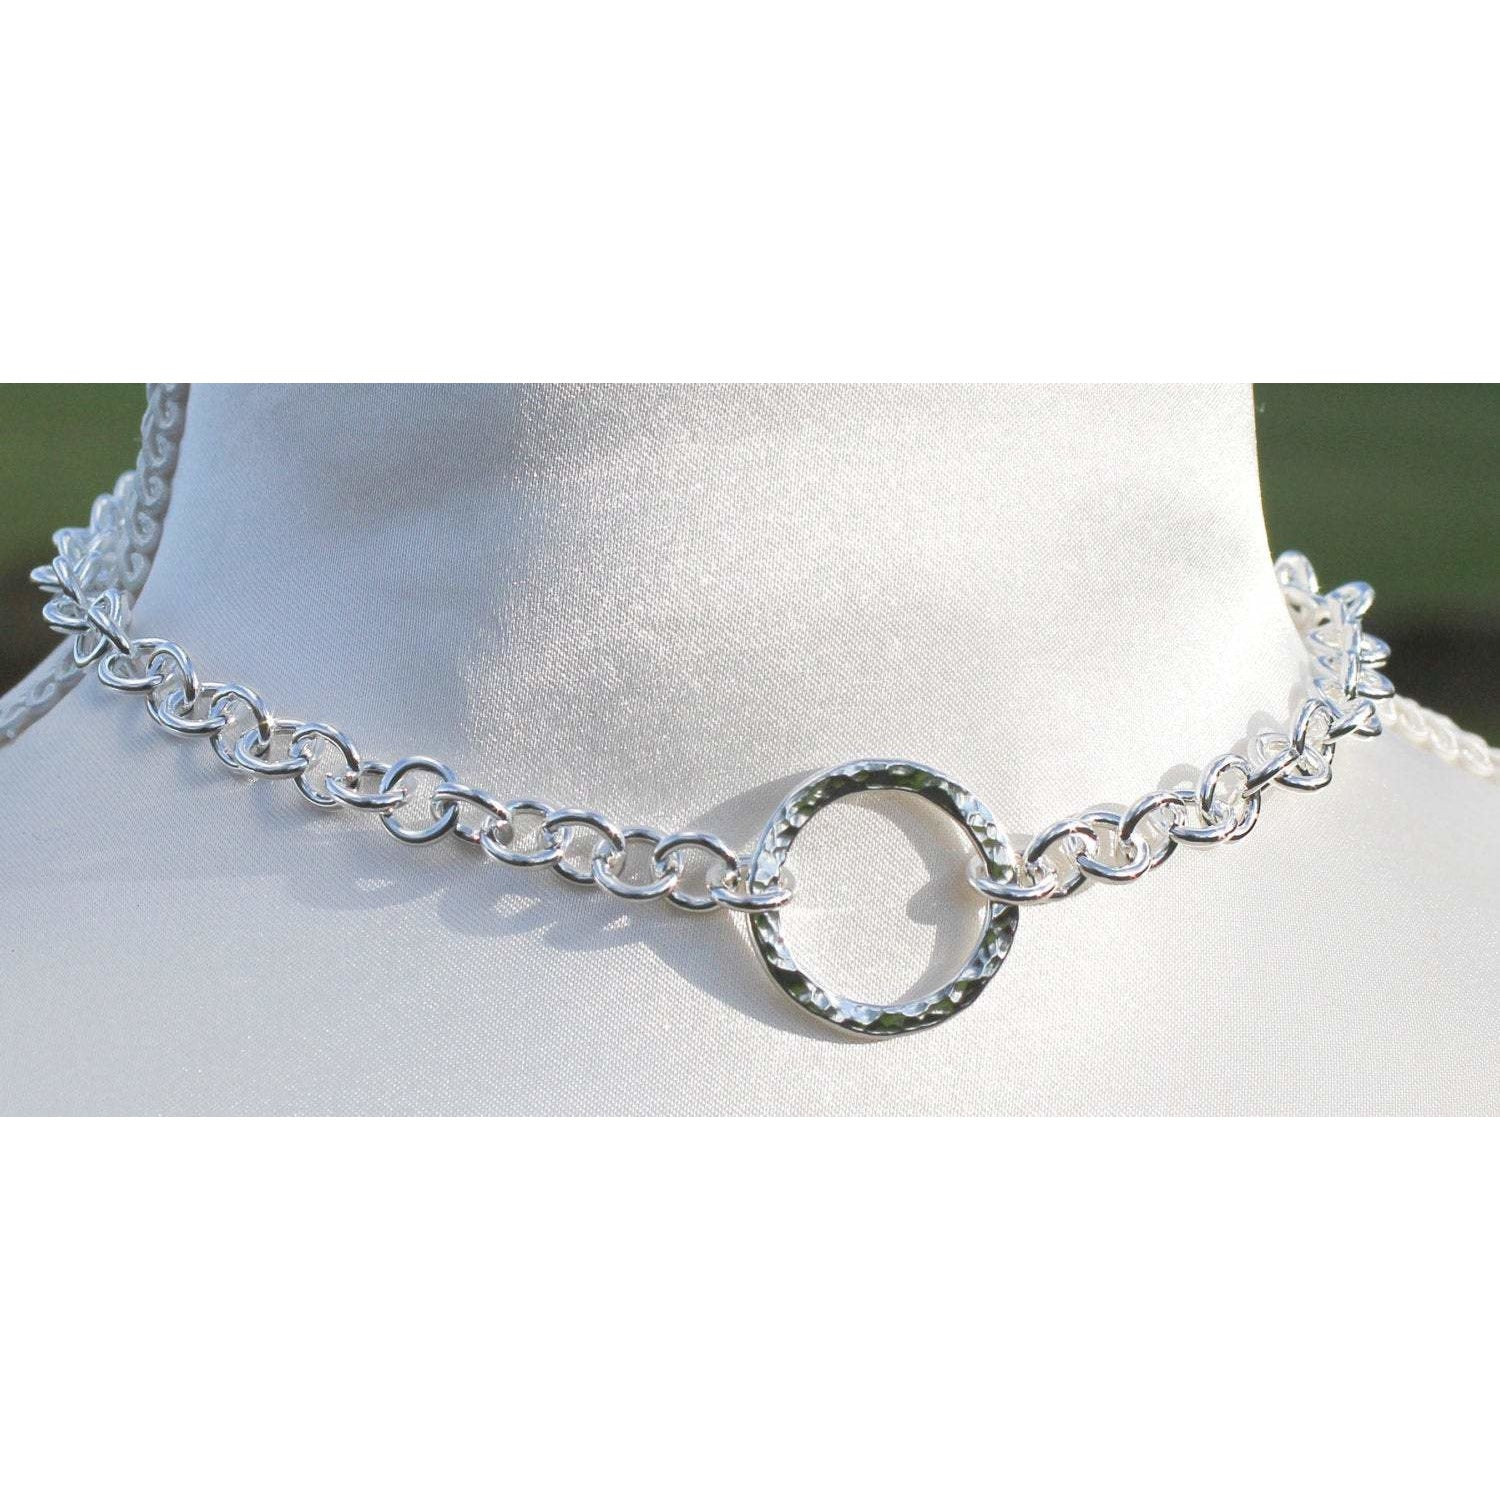 Sterling Silver, BDSM Style Day Collar.  Heavy Chain. Classic O Ring chain  BDSM collar, Chunky Hammered O ring, Handmade BDSM Collar.